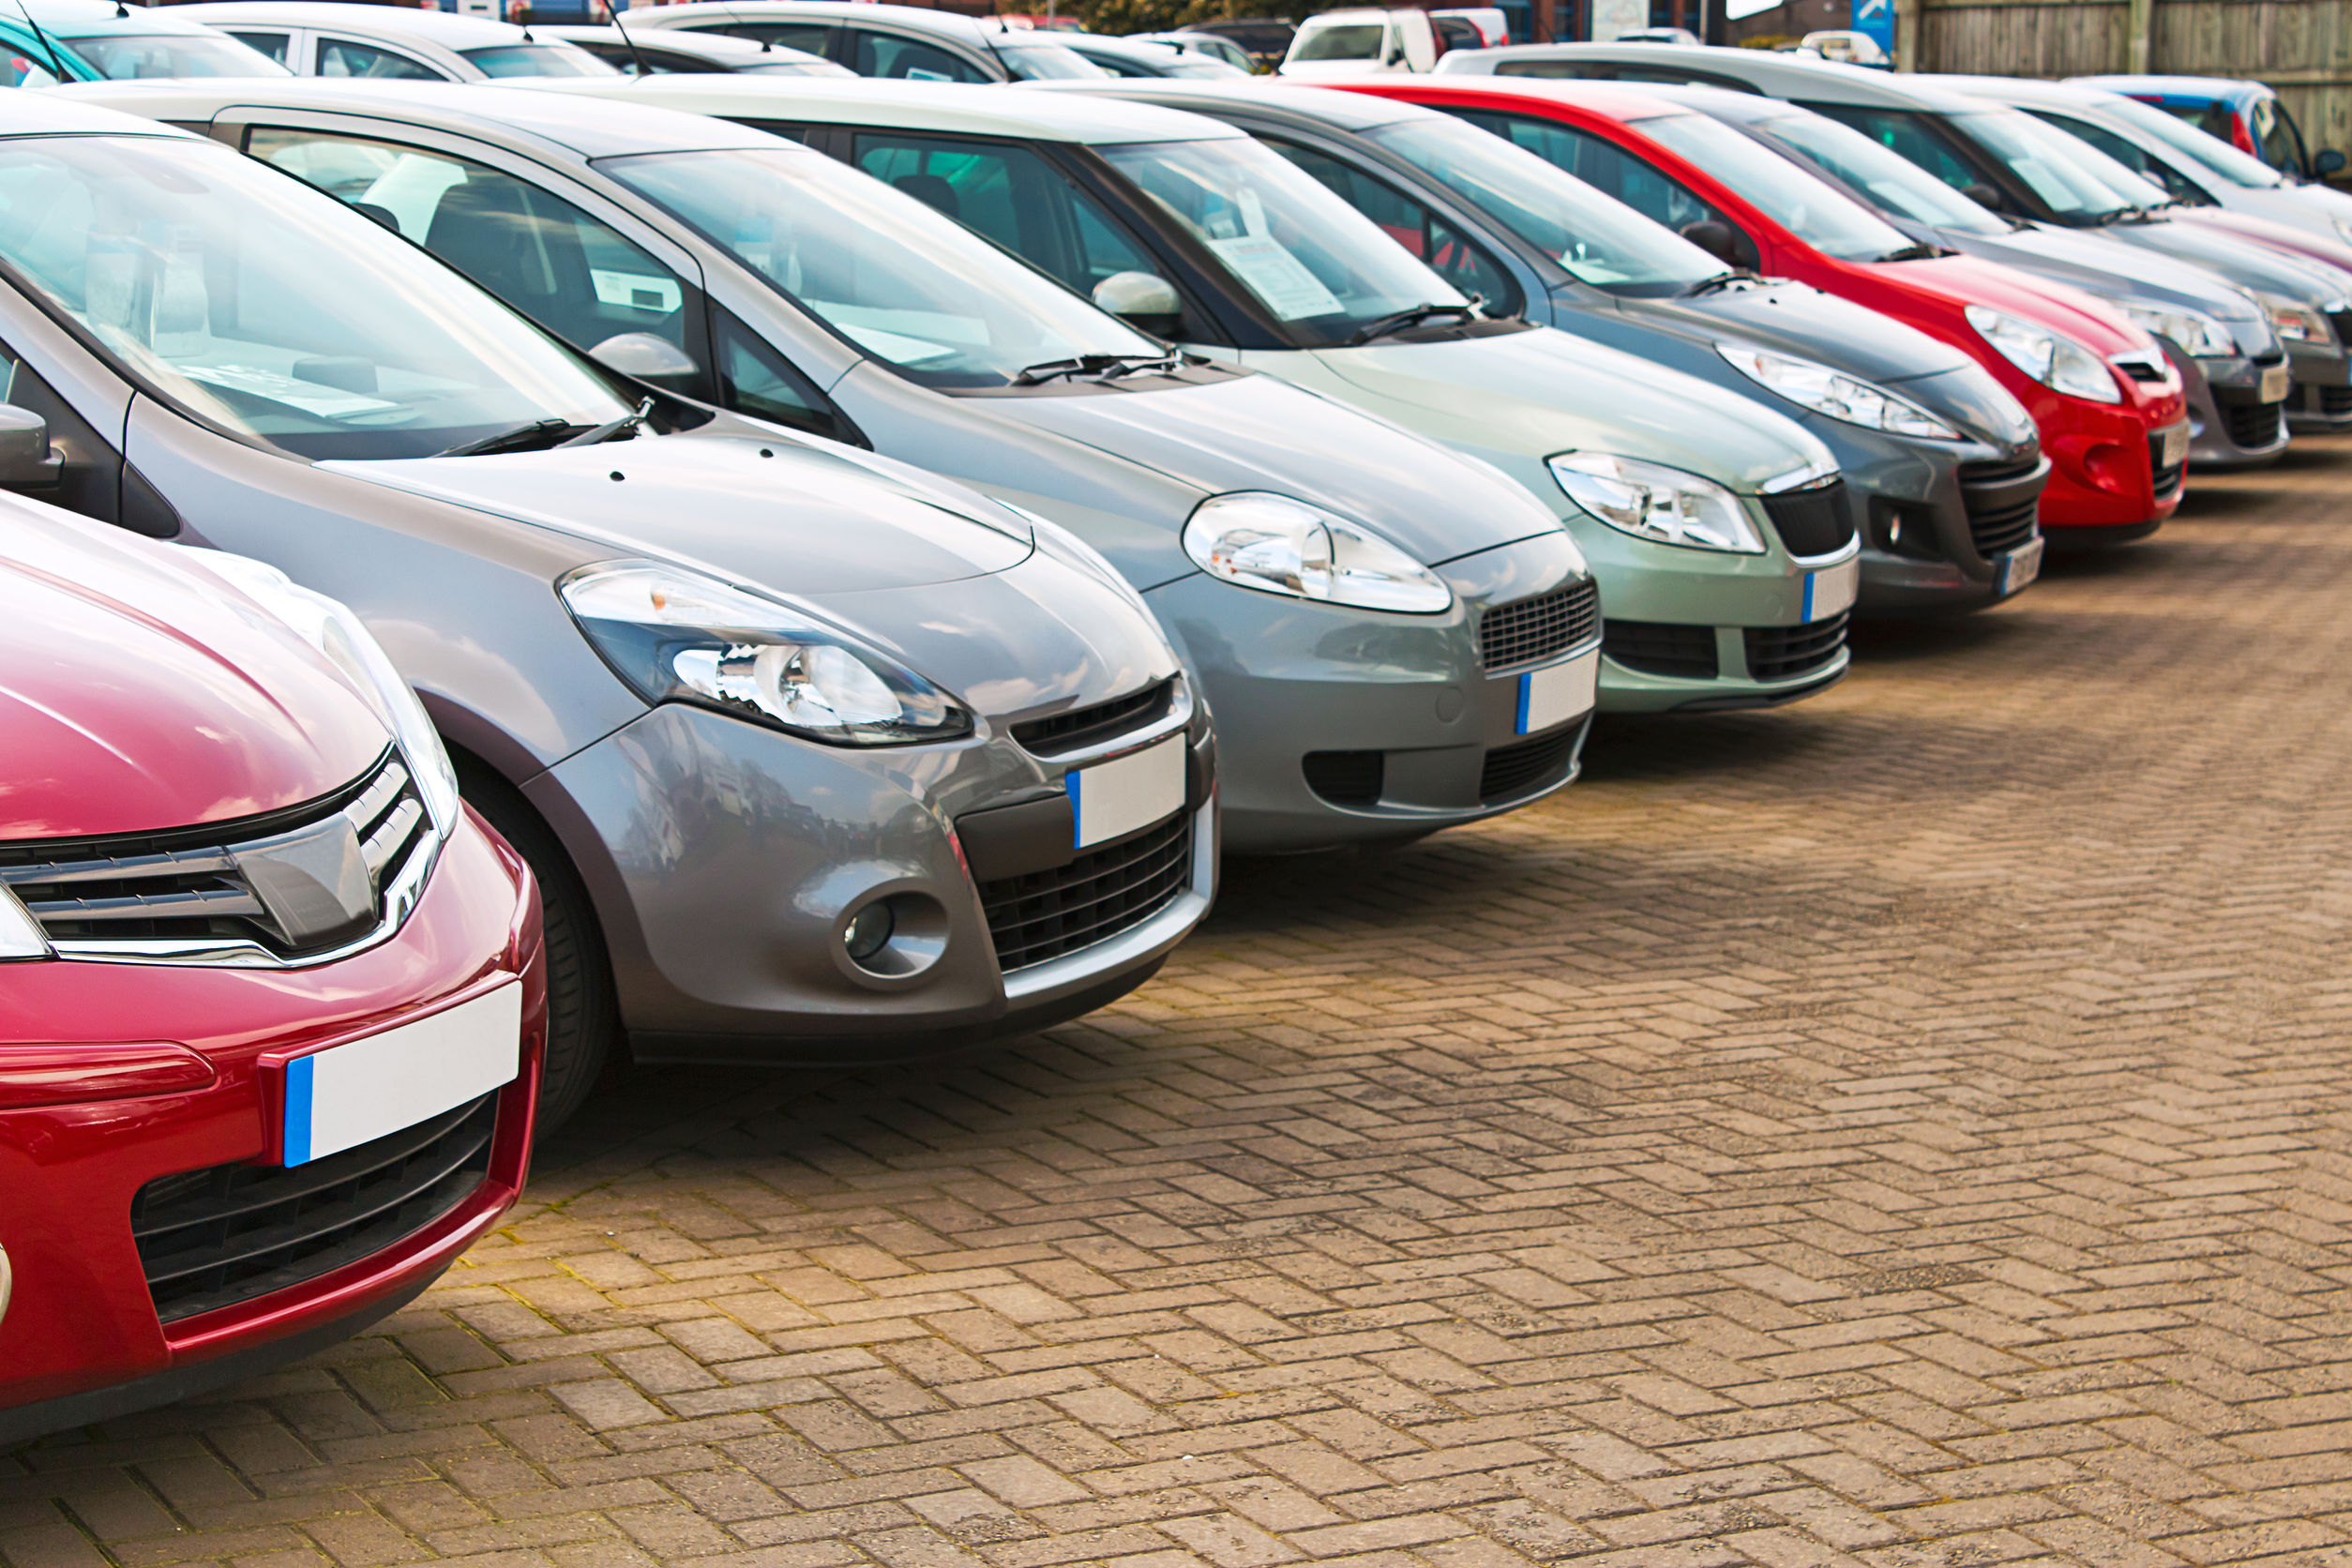 Probe: Dealerships selling tax-free vehicles at duty cost